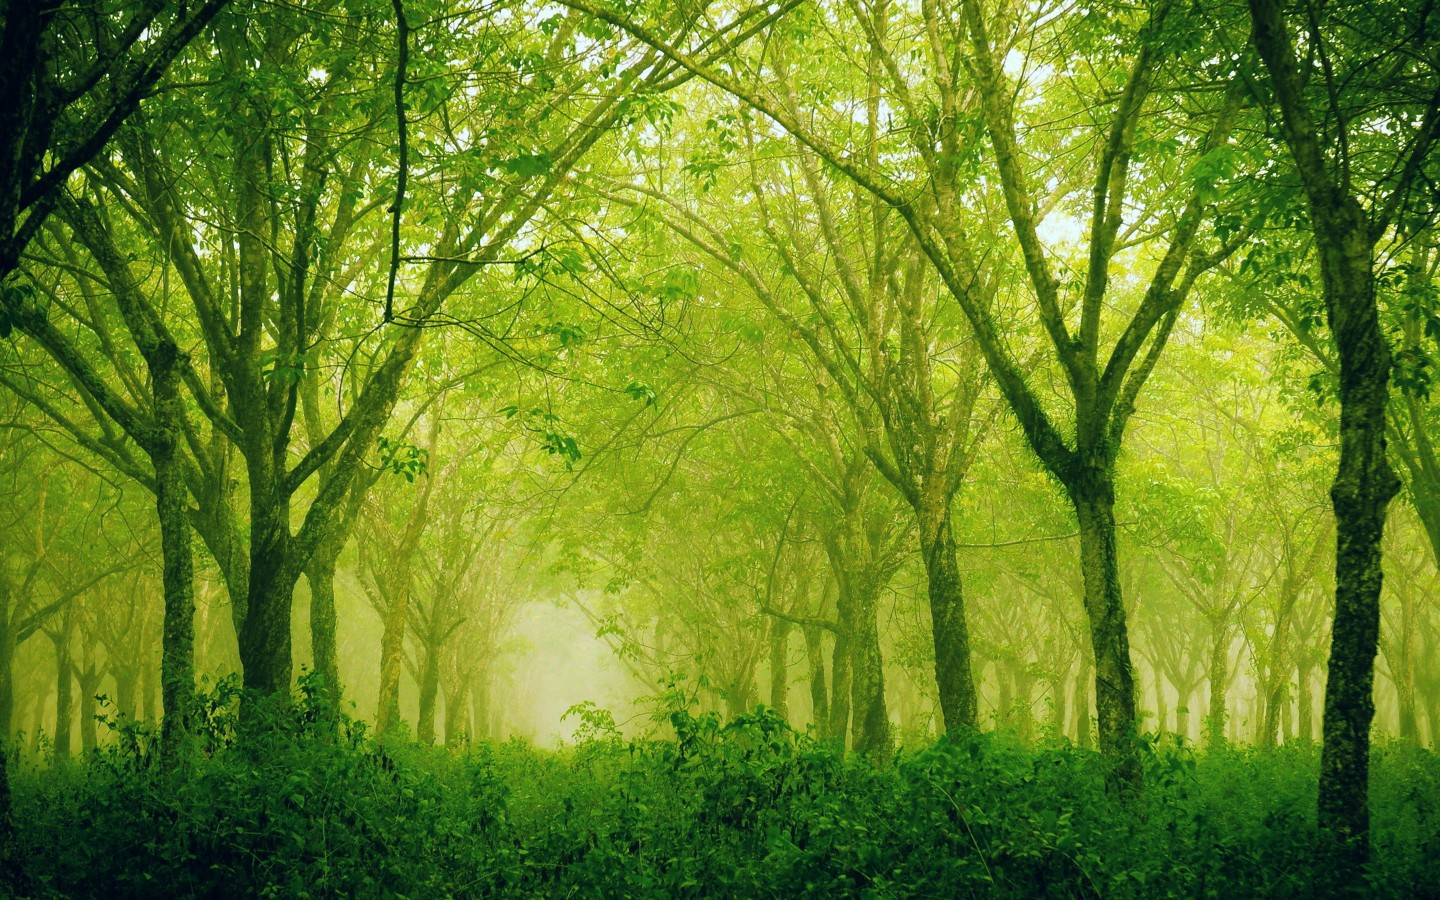 Hd wallpaper sublime silence forest for 2880 x 1800 retina display ...